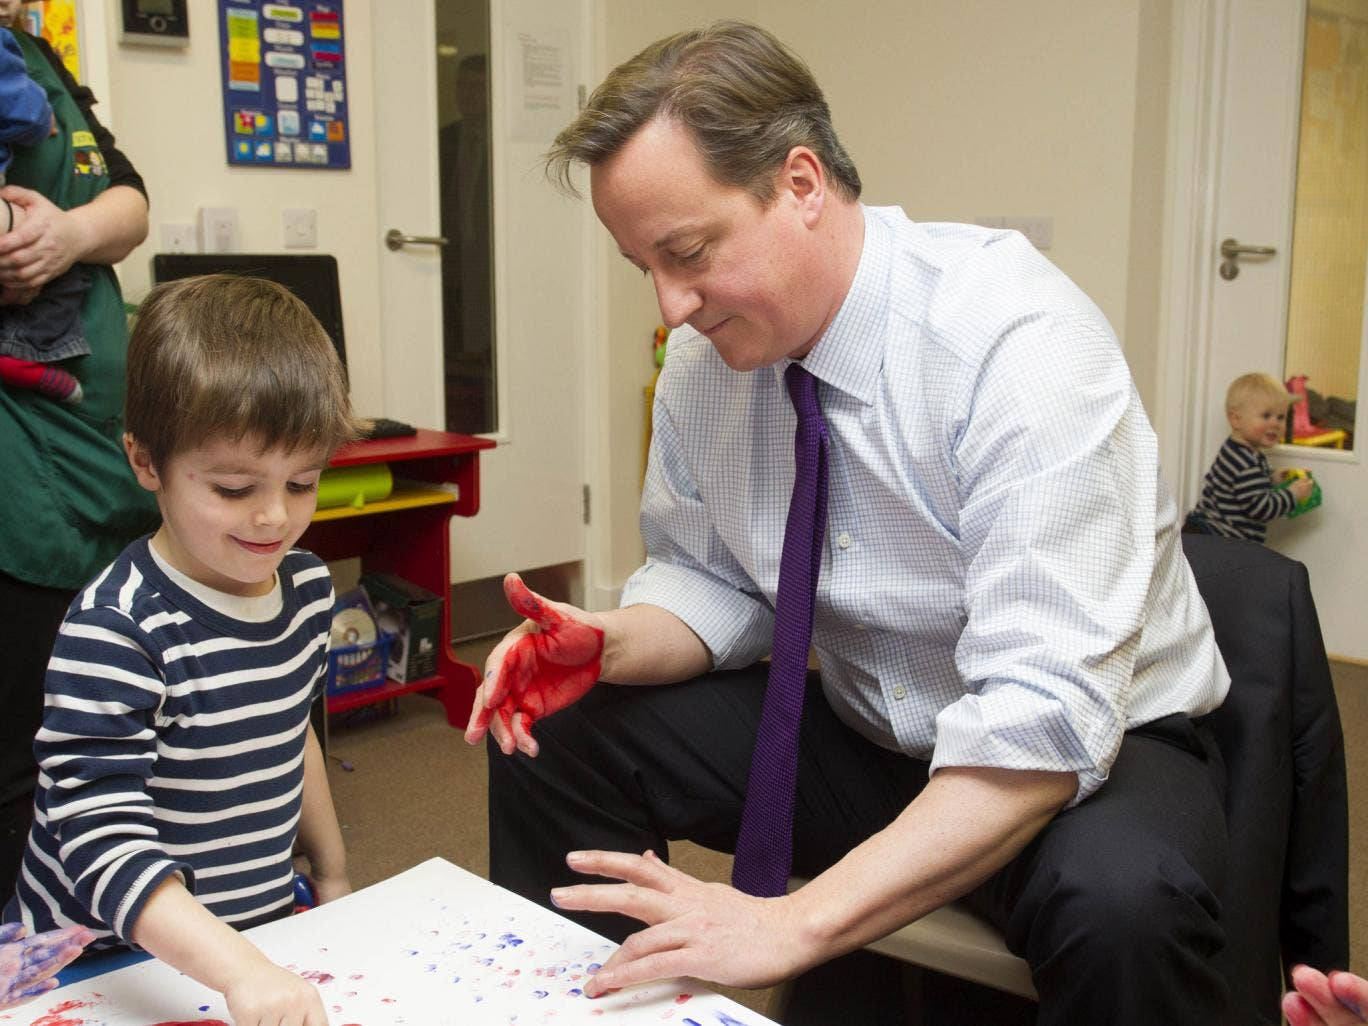 David Cameron said he will look to compromise on the controversial policy